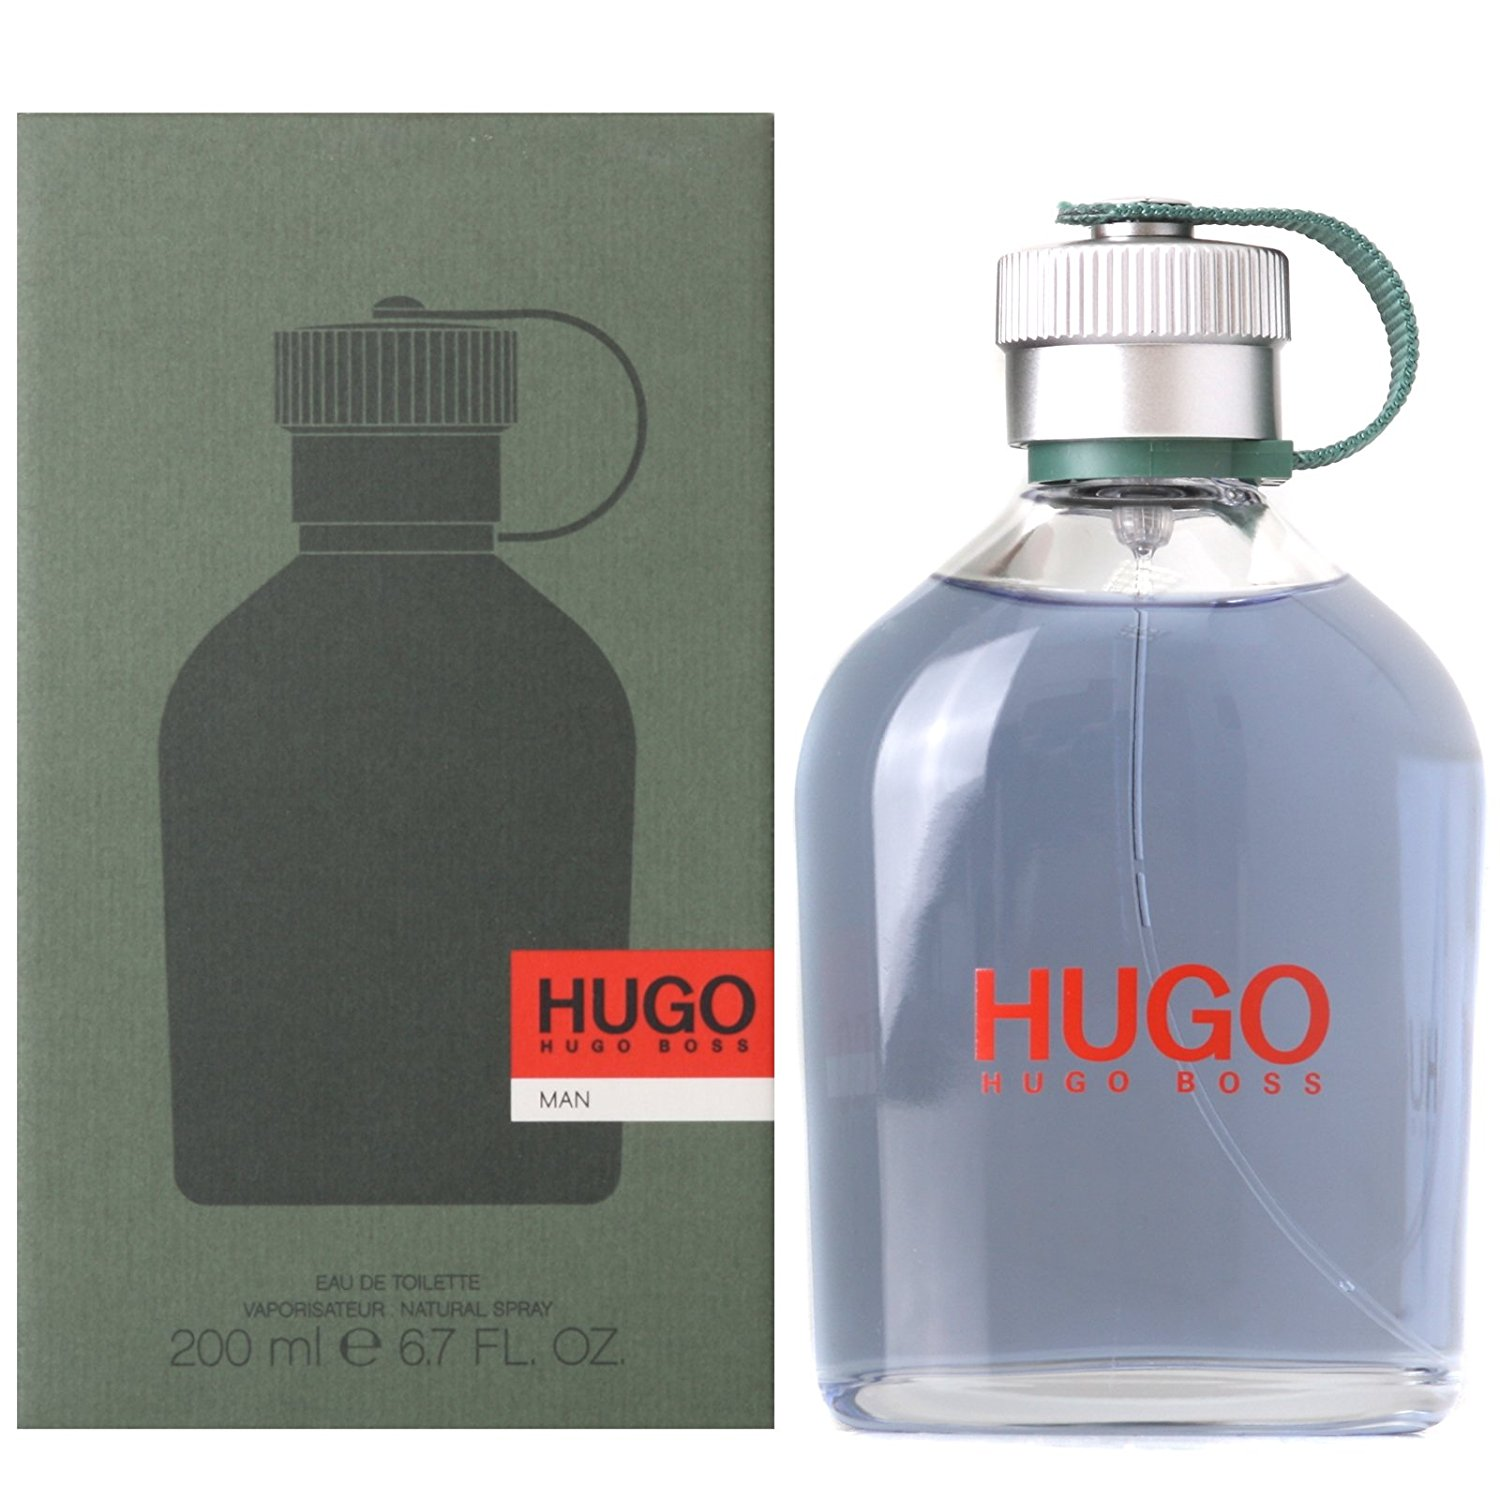 Hugo Man Eau de Toilette 200 ml, Parfum pas cher Amazon